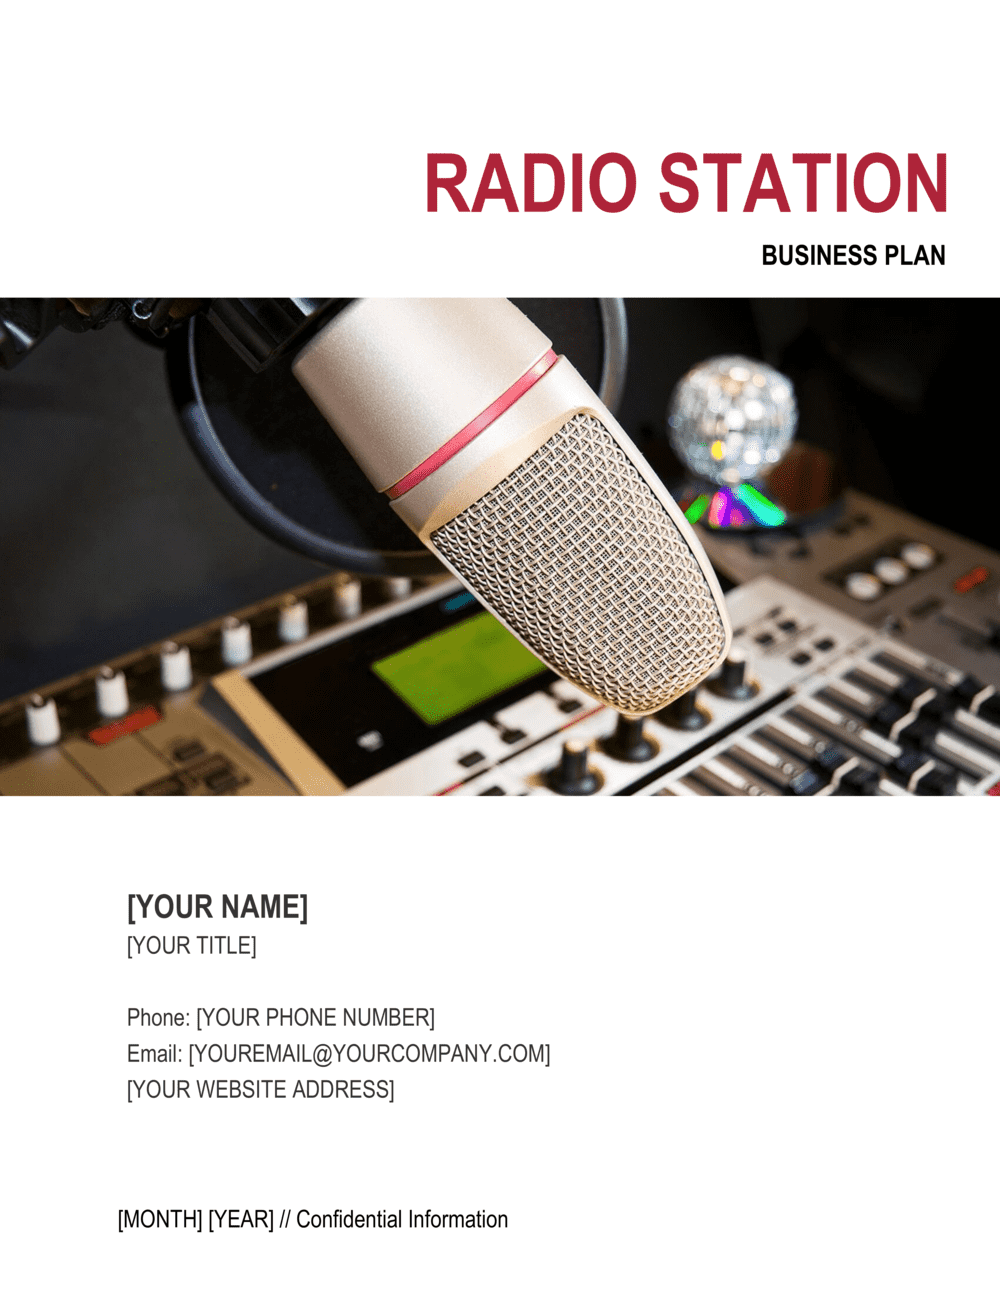 Business-in-a-Box's Radio Station Business Plan Template